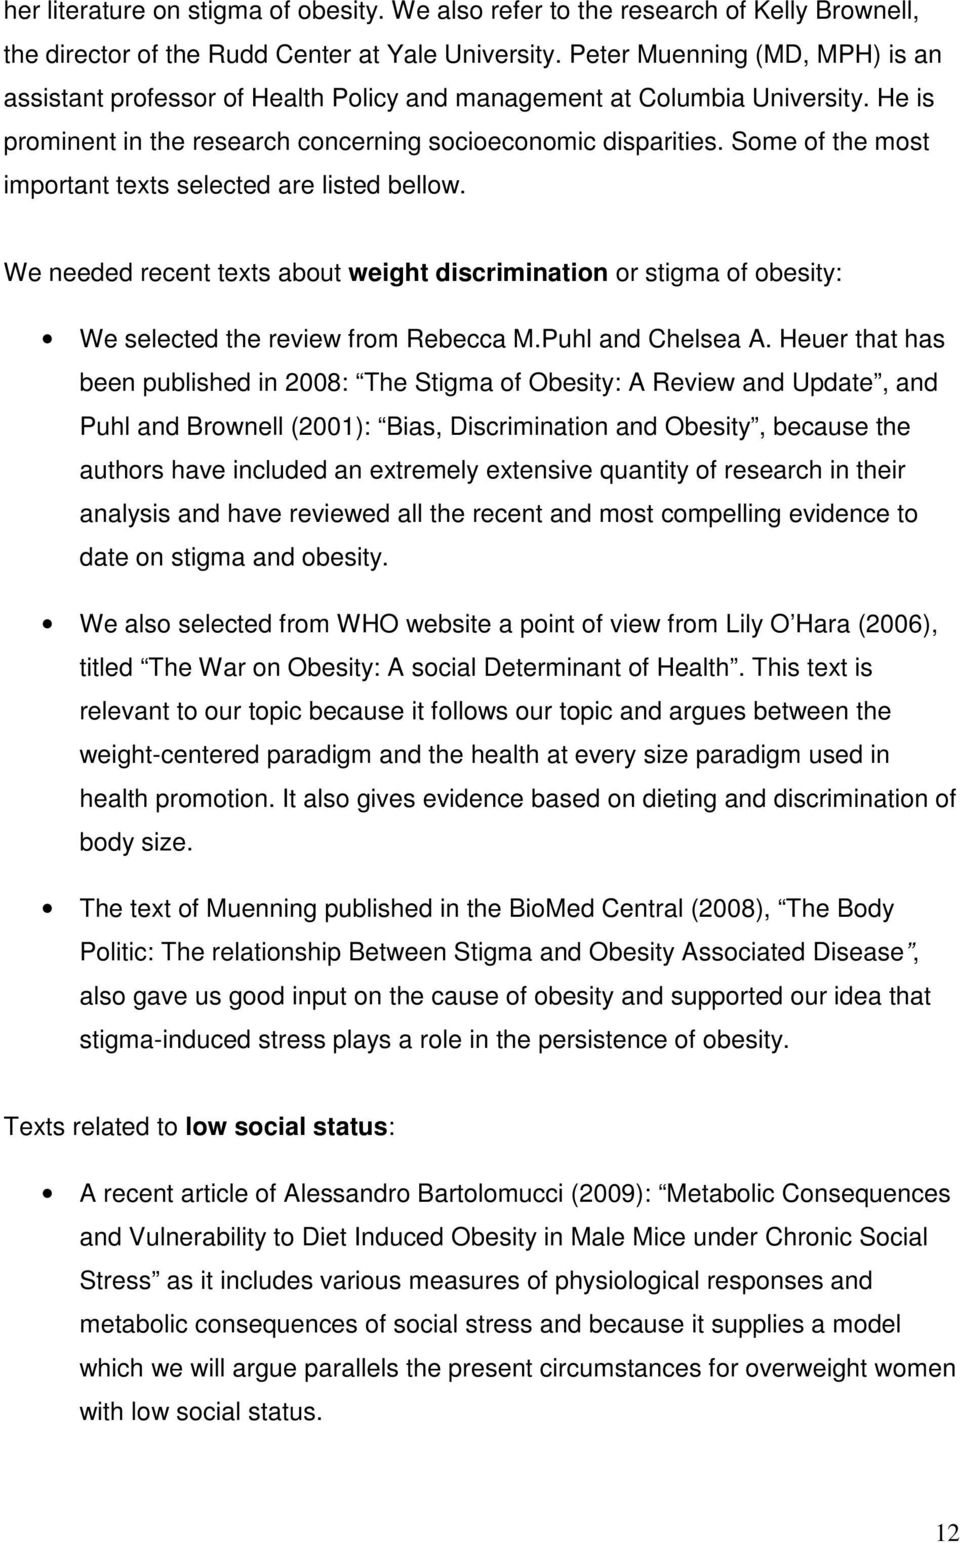 Some of the most important texts selected are listed bellow. We needed recent texts about weight discrimination or stigma of obesity: We selected the review from Rebecca M.Puhl and Chelsea A.